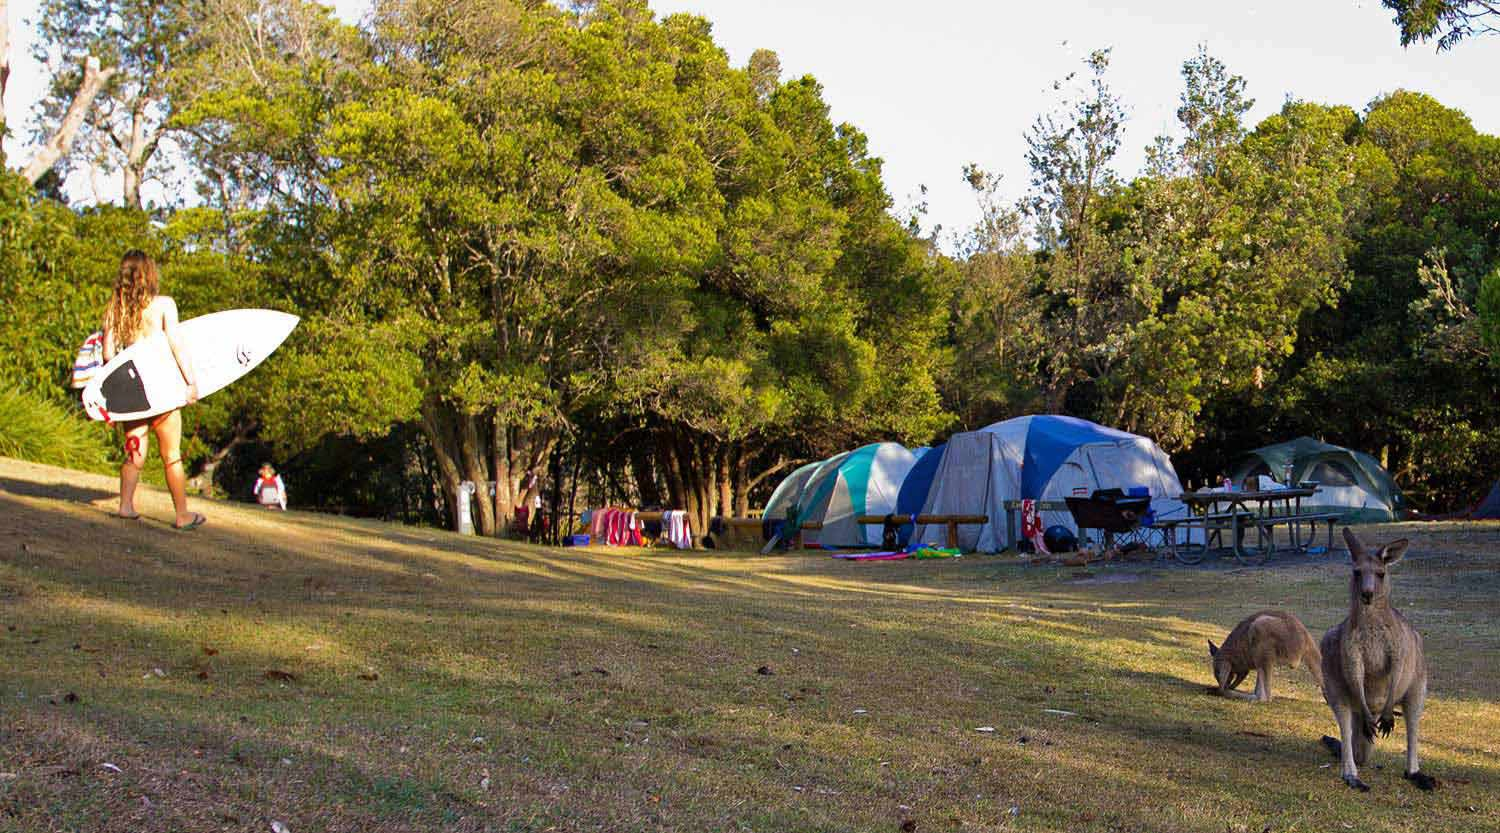 Camping at Cave Beach, Booderee National Park